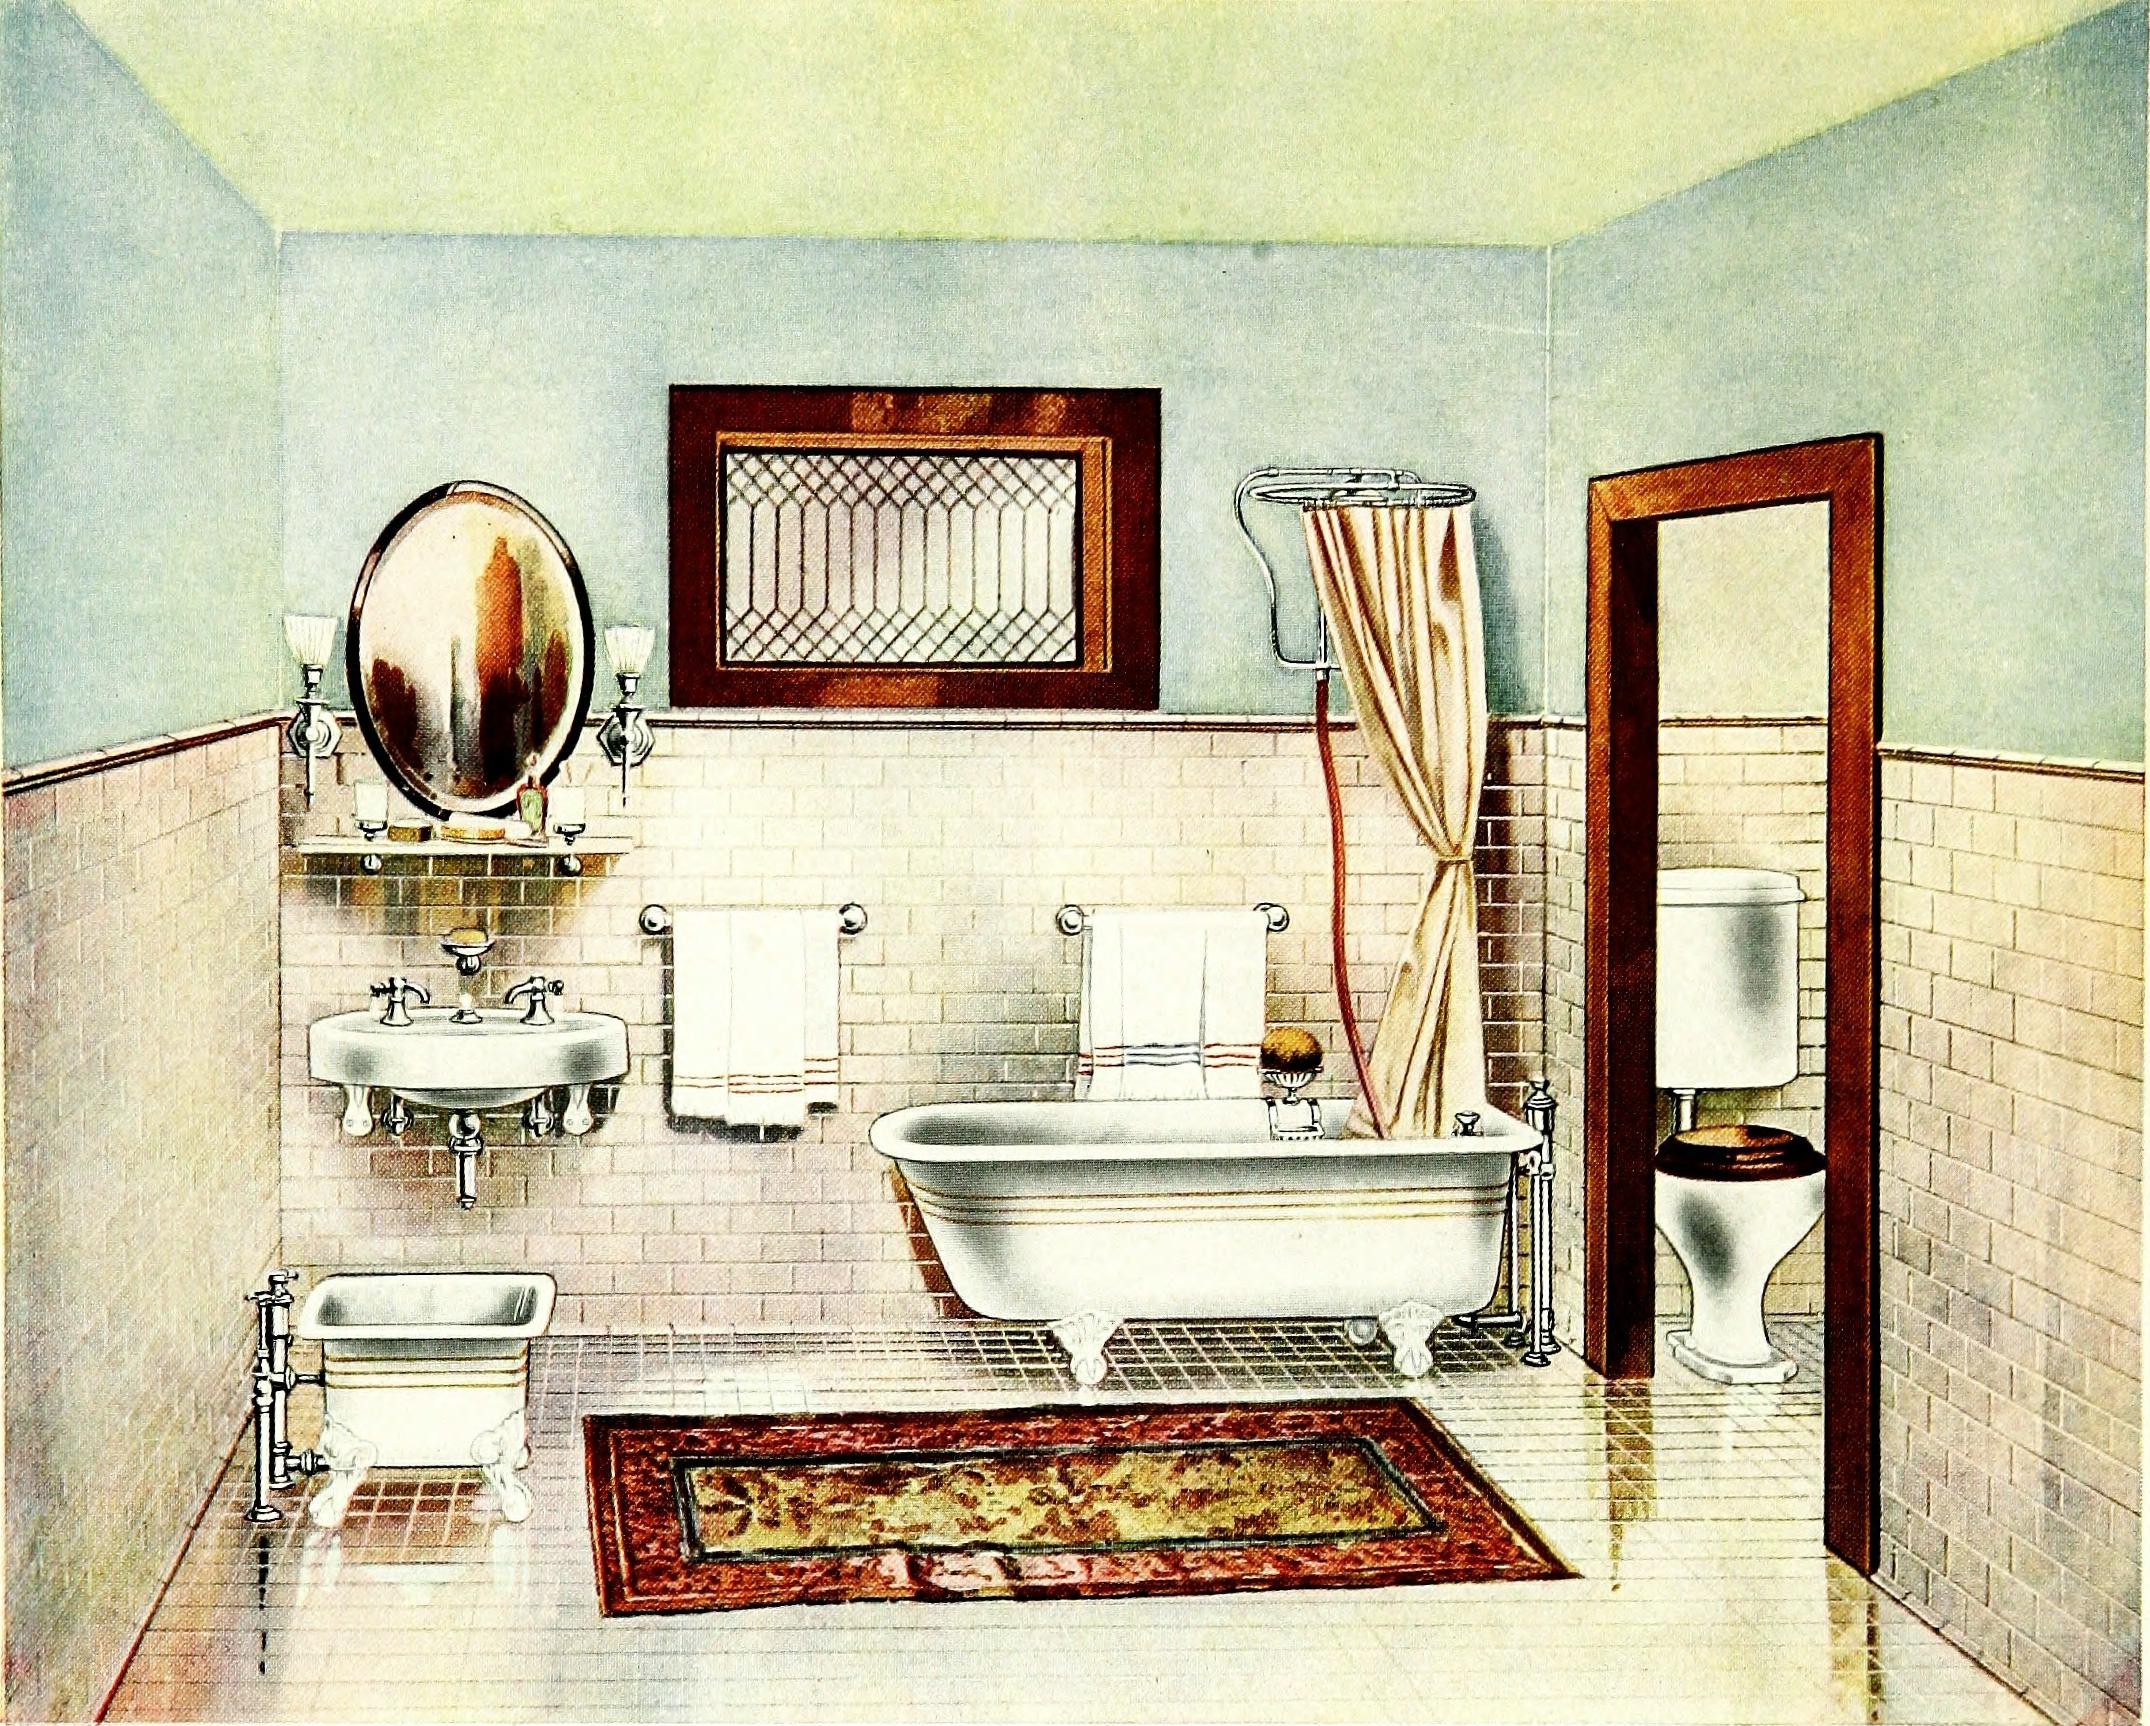 about to remodel their present dwellings Year: 1912 (1910s) Authors: Standard Sanitary Manufacturing Company Subjects: Bathrooms Bathrooms Plumbing Publisher: